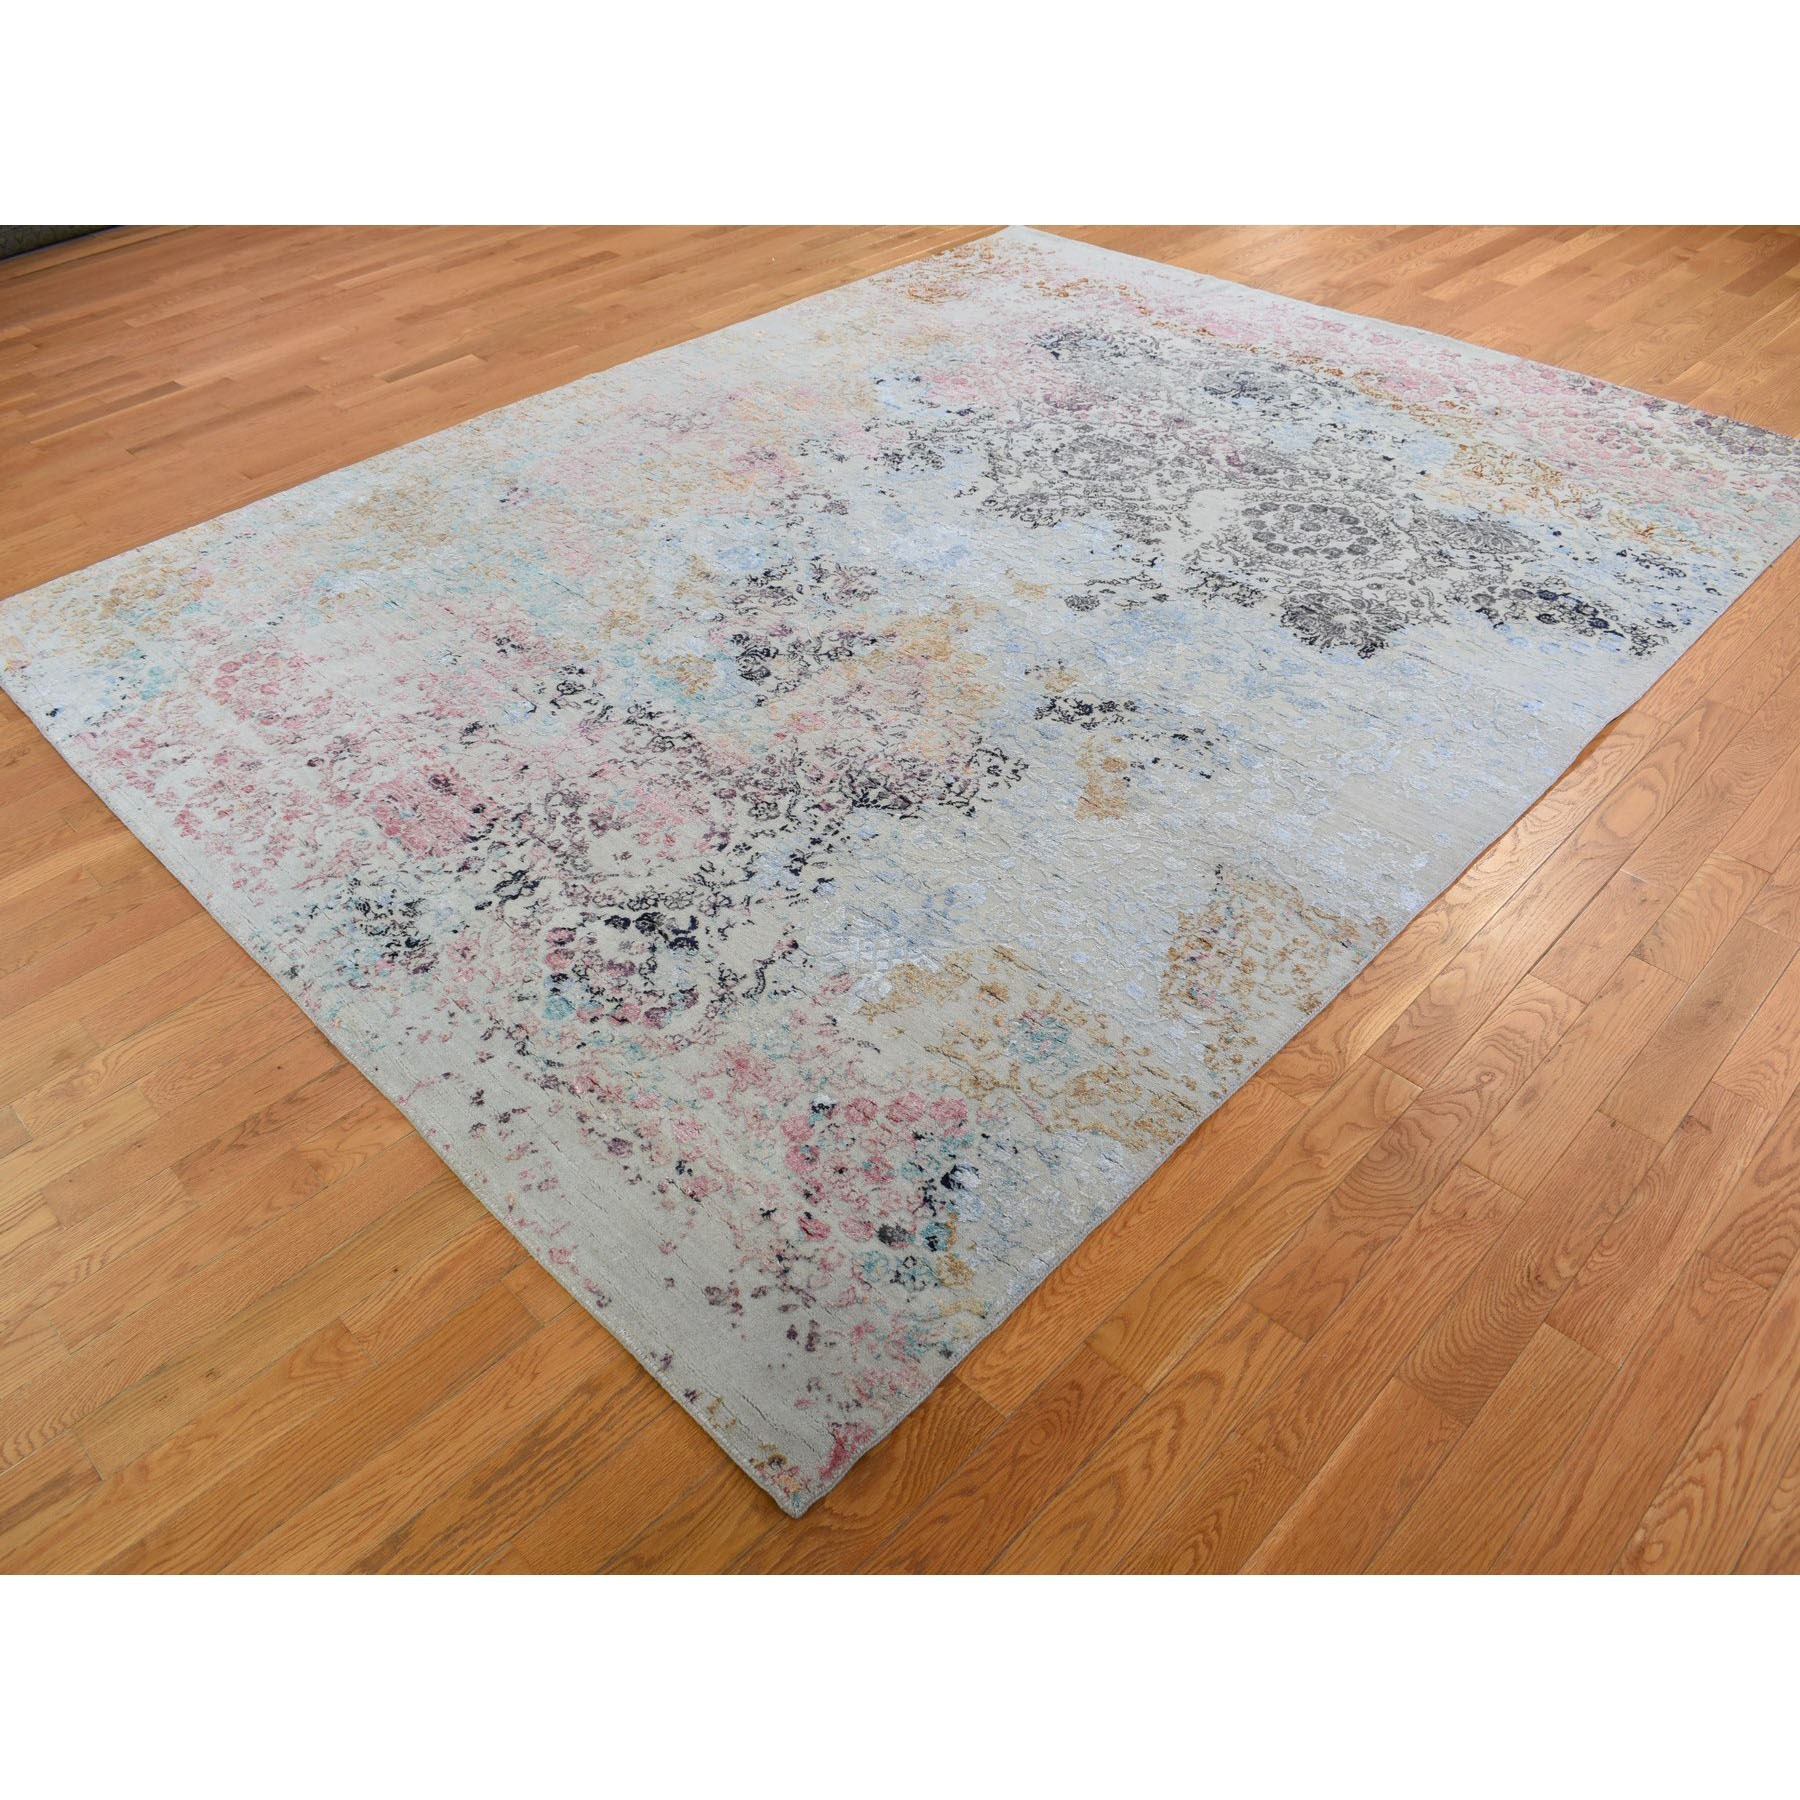 8'x10' Transitional Agra With Pop Of Color Wool And Silk Hand Knotted Oriental Rug